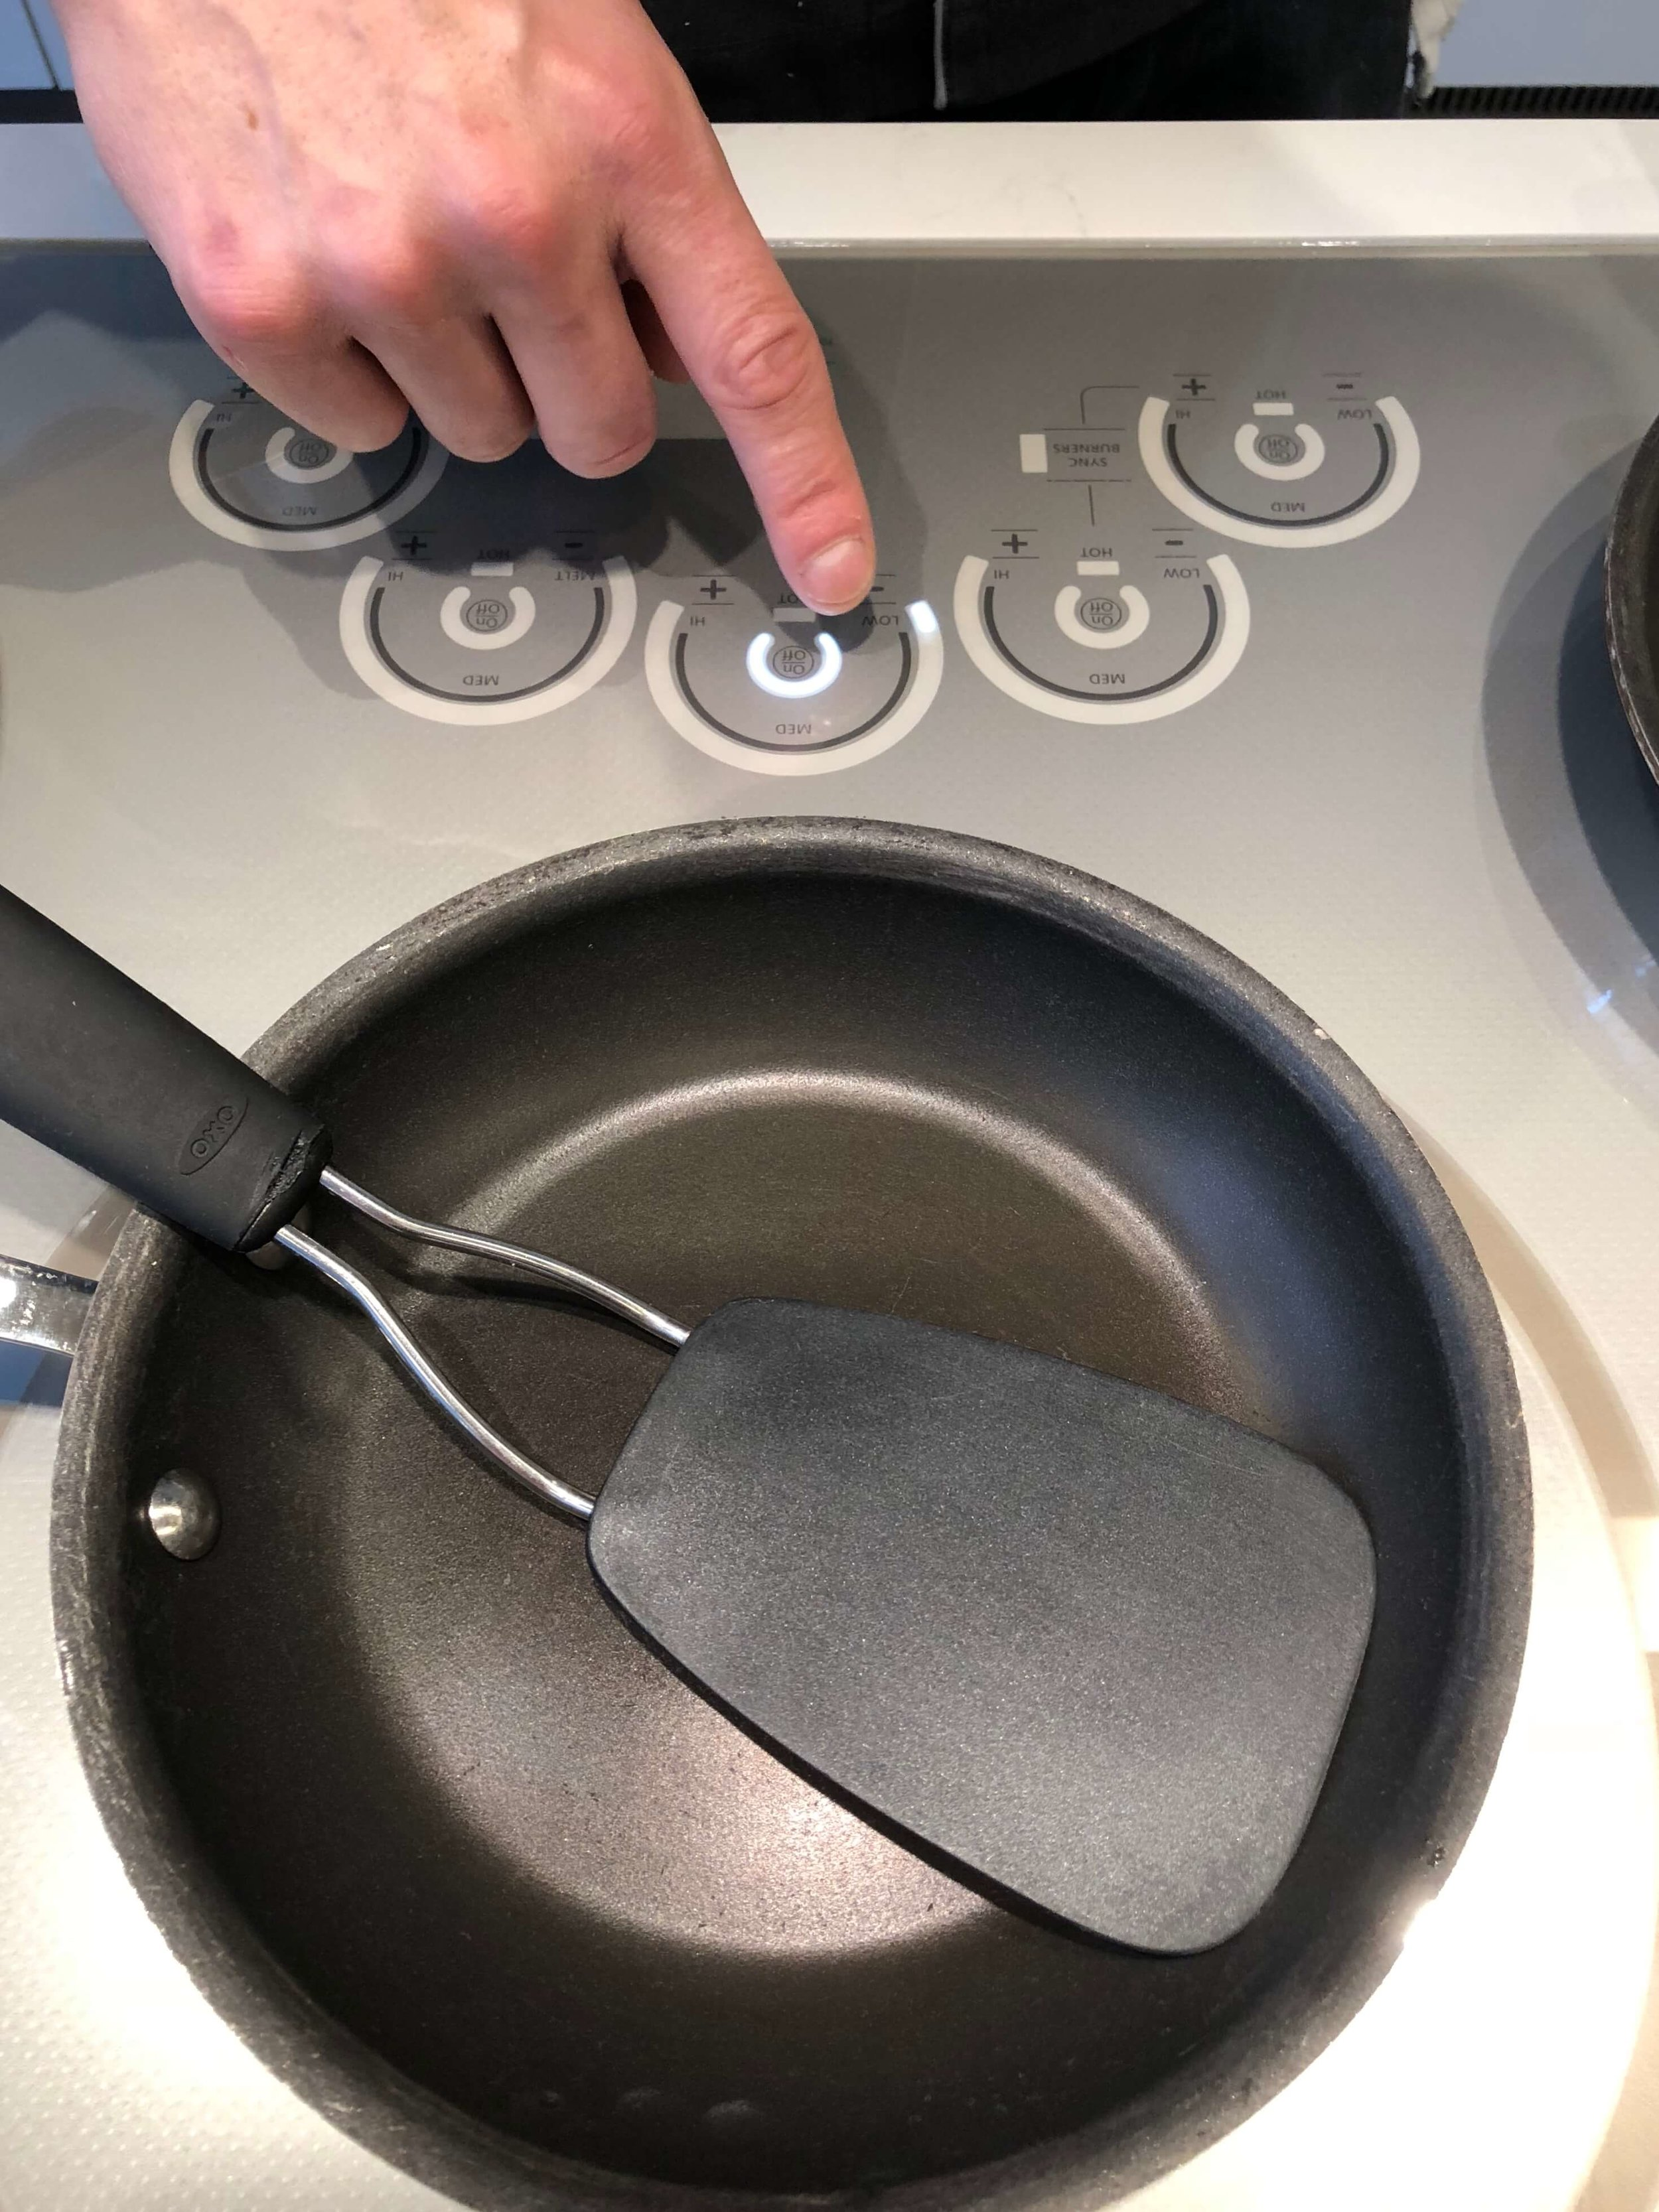 Controls on the induction cooktop of Monogram Appliances #inductioncooktop #monogramappliances #cooktop #inductioncooking